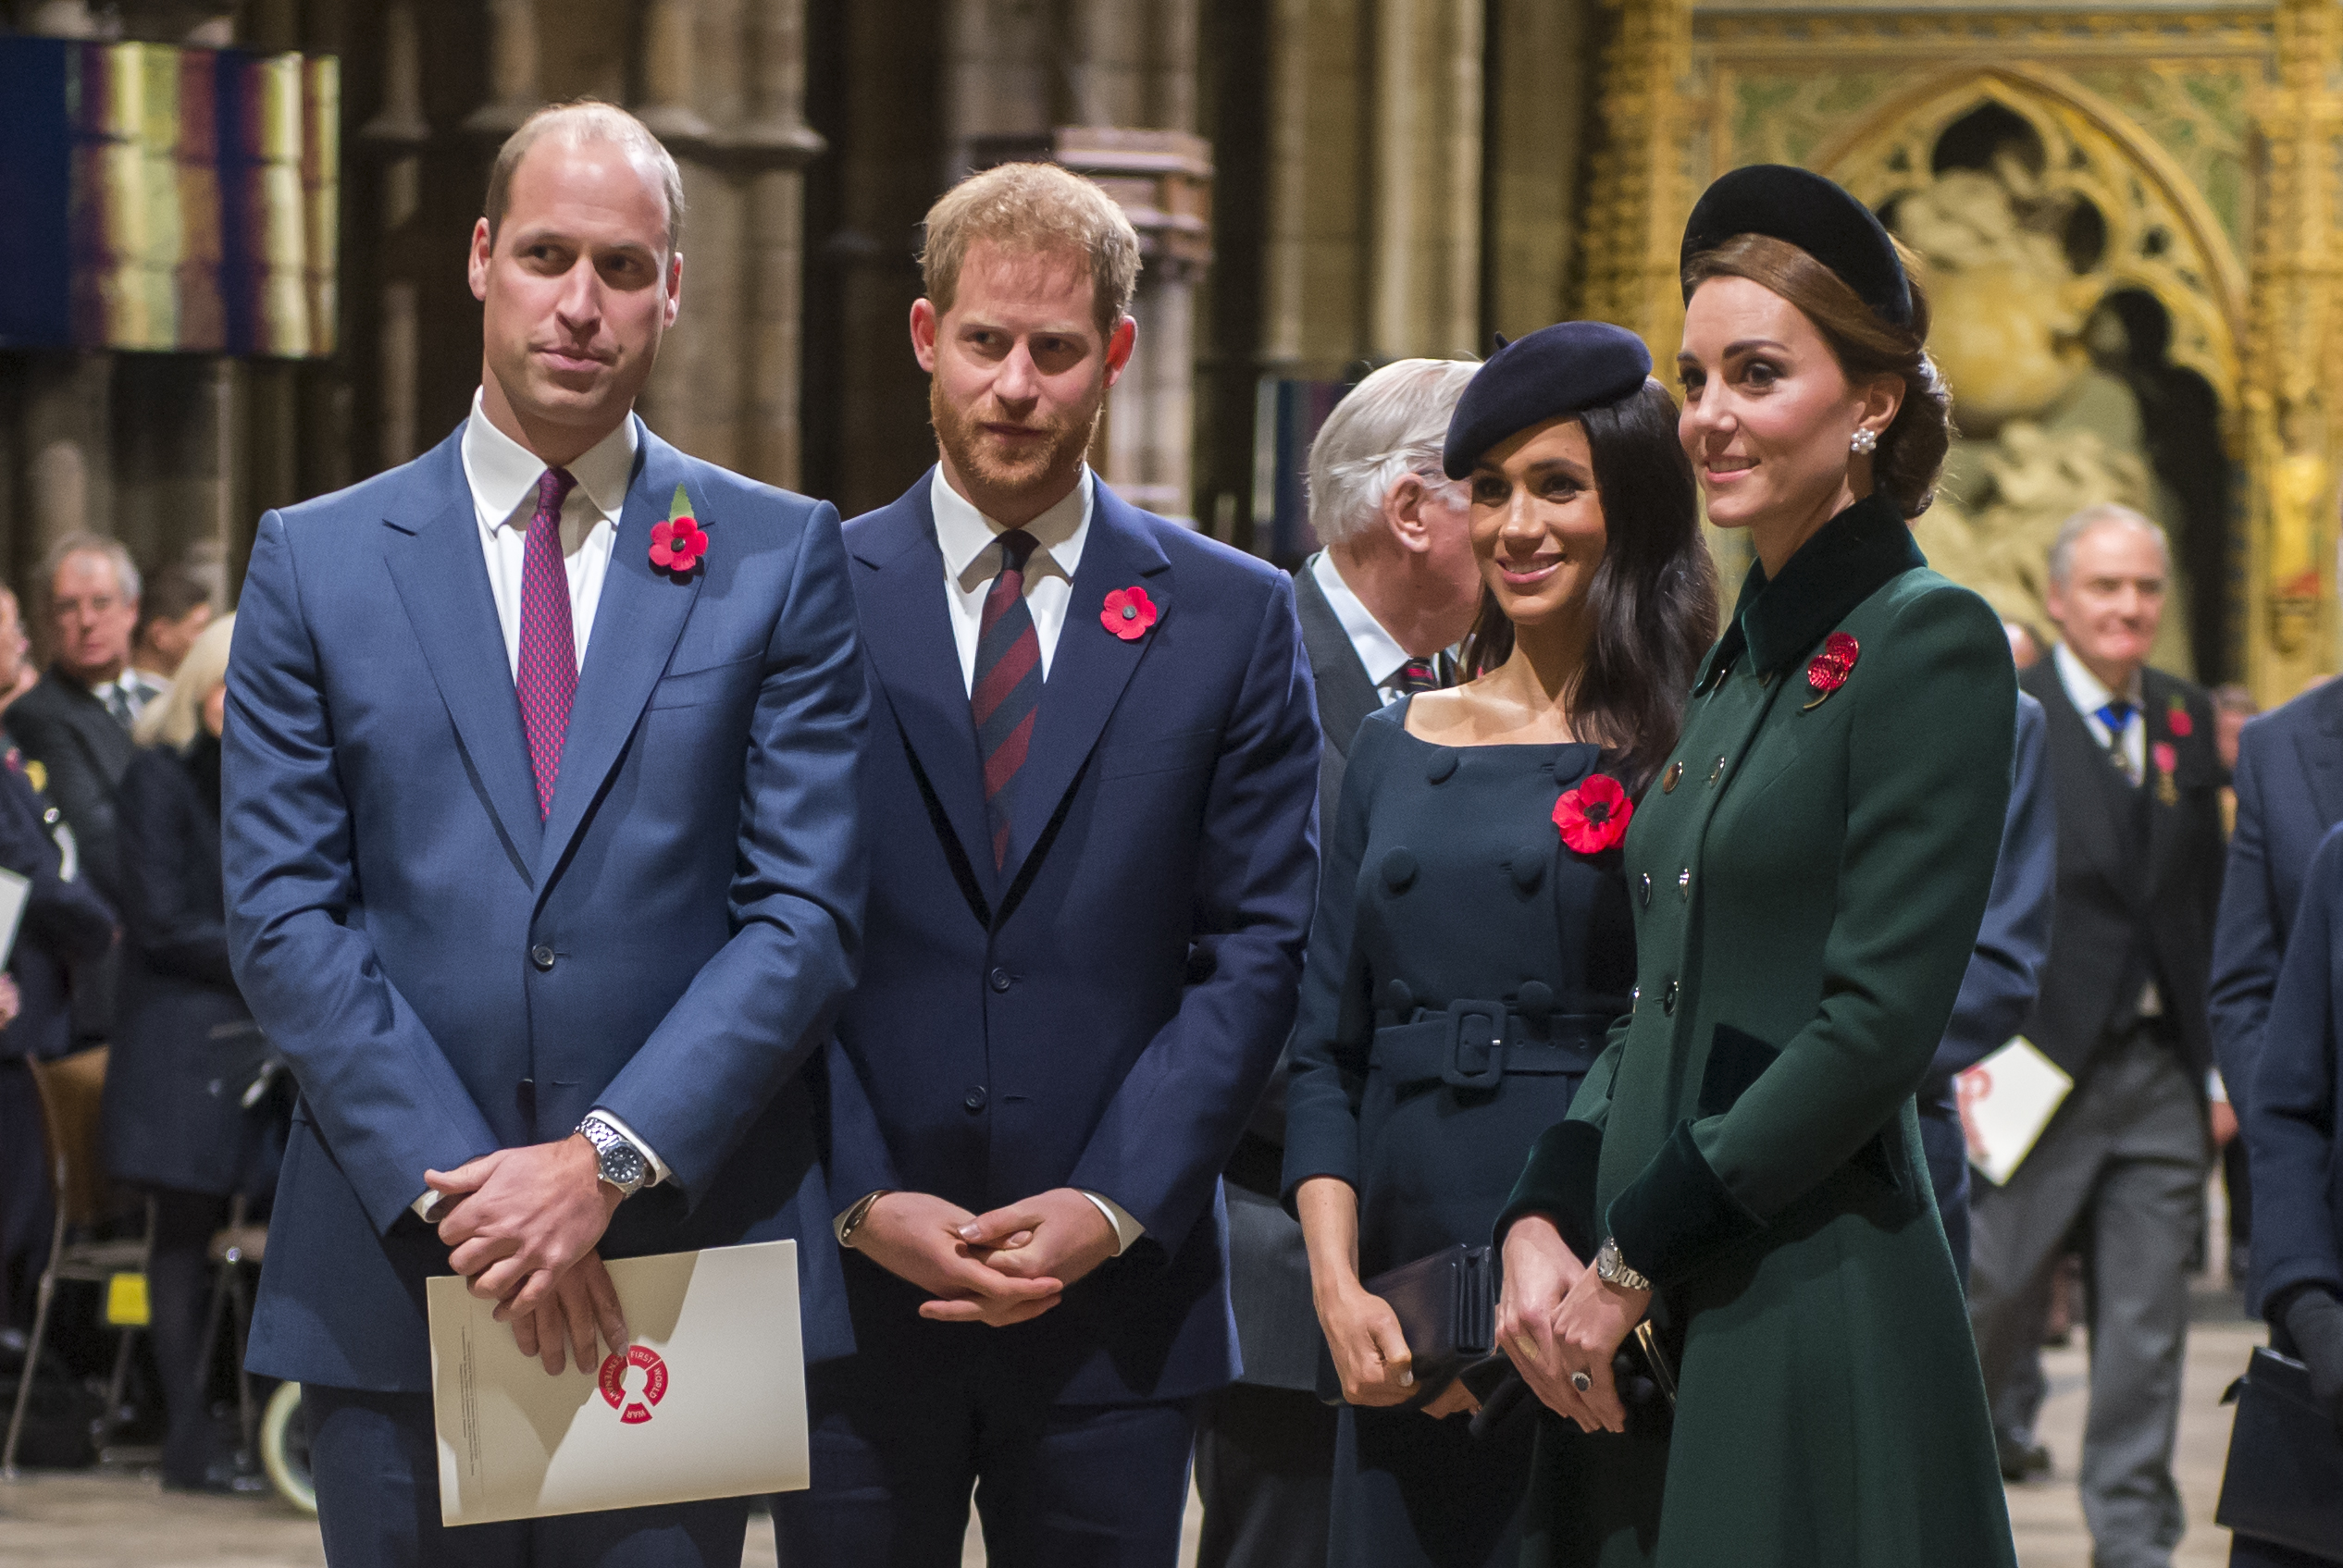 Prince Harry and Meghan say goodbye to Prince William and Catherine and move home to start their family life